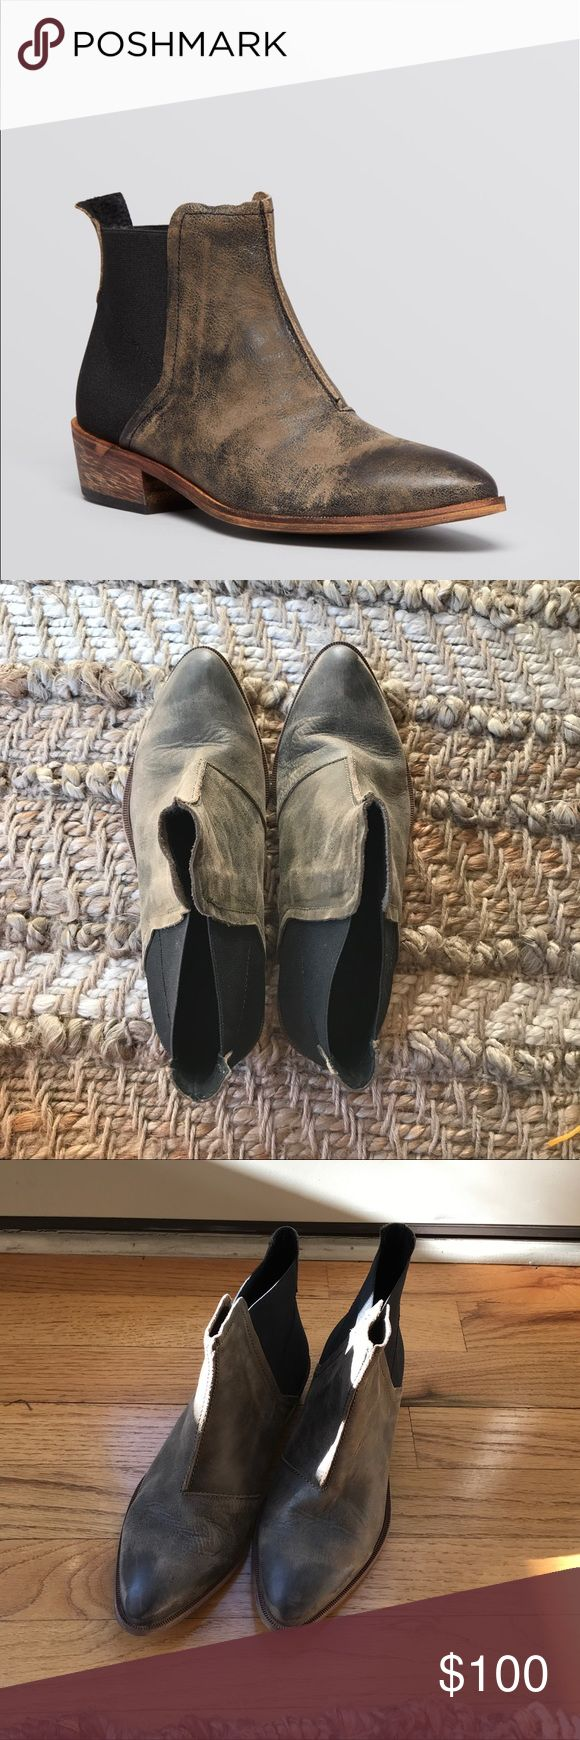 Free People Flat Chelsea Boot Sz. 7 Worn only once. A beautiful pair of Chelsea boots by Free People. They are a size 37 or 7 and fit true to size in my opinion. They are a great boot for every day and so cute with many outfits. Have a greenish/ brown color to them. Please ask any questions! Sold out! Modeled pic shown in other color scheme. Free People Shoes Ankle Boots & Booties